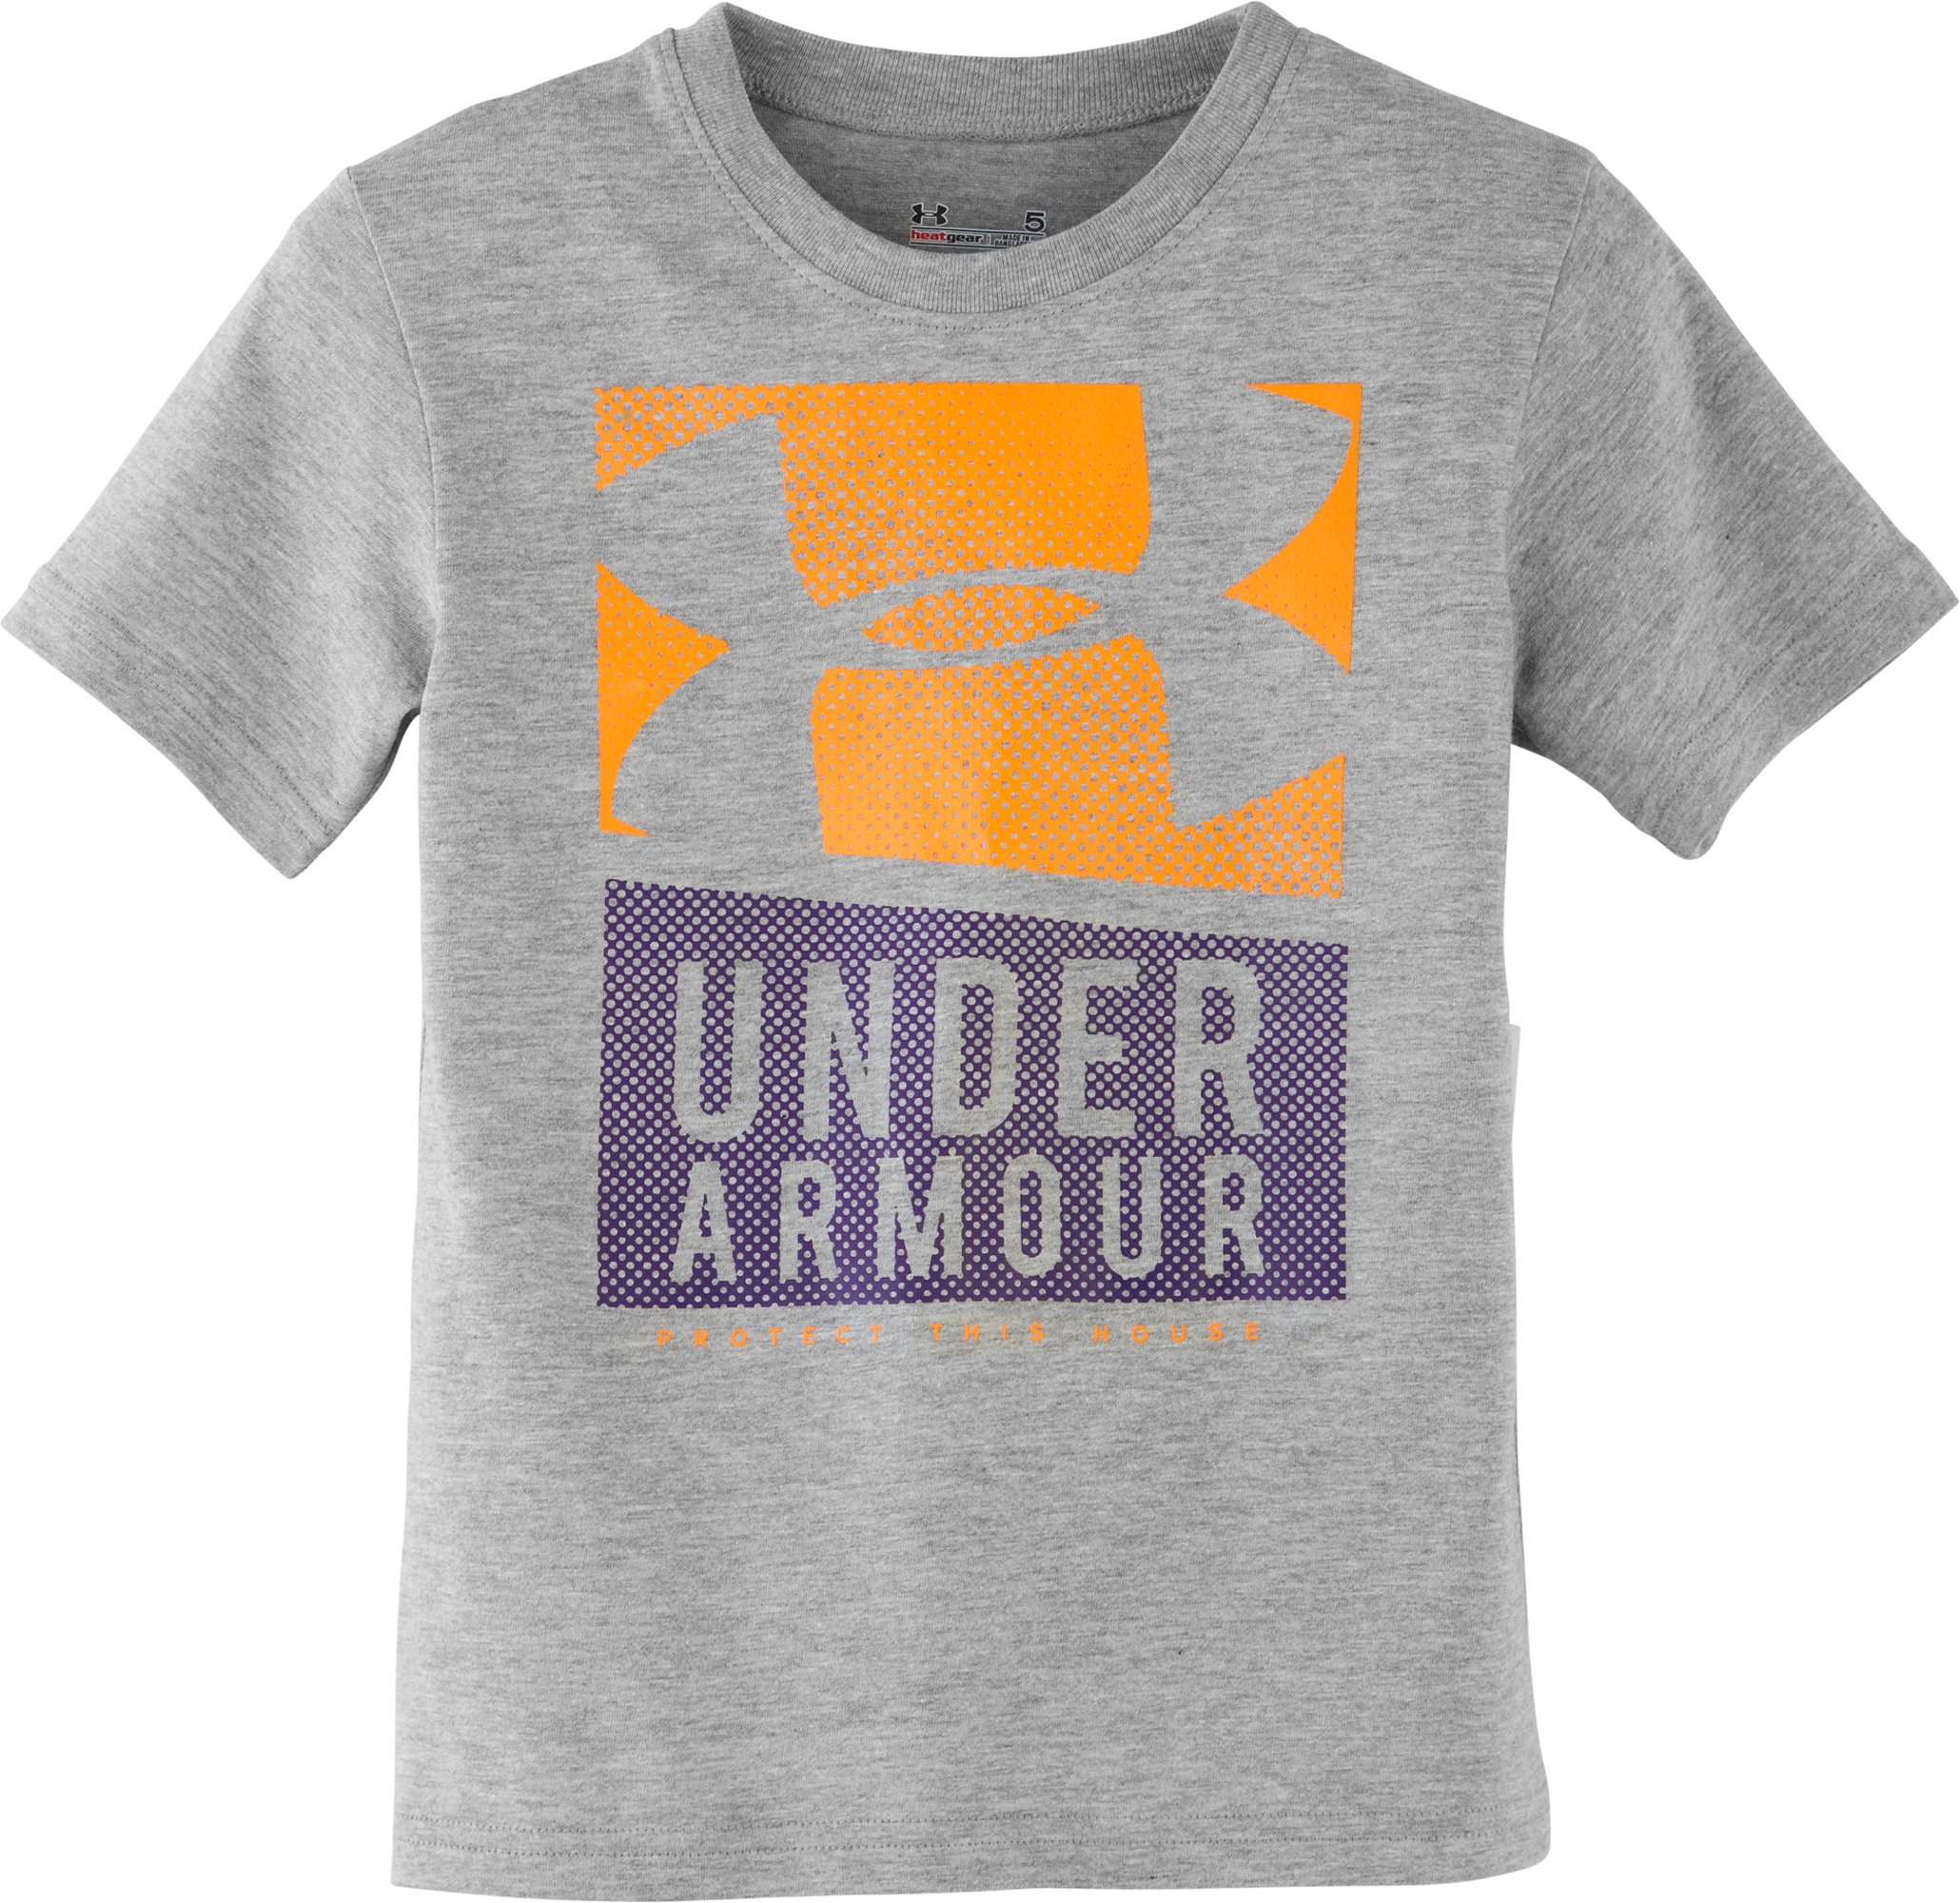 Boys' Pre-School UA Motion T-Shirt, True Gray Heather, Laydown